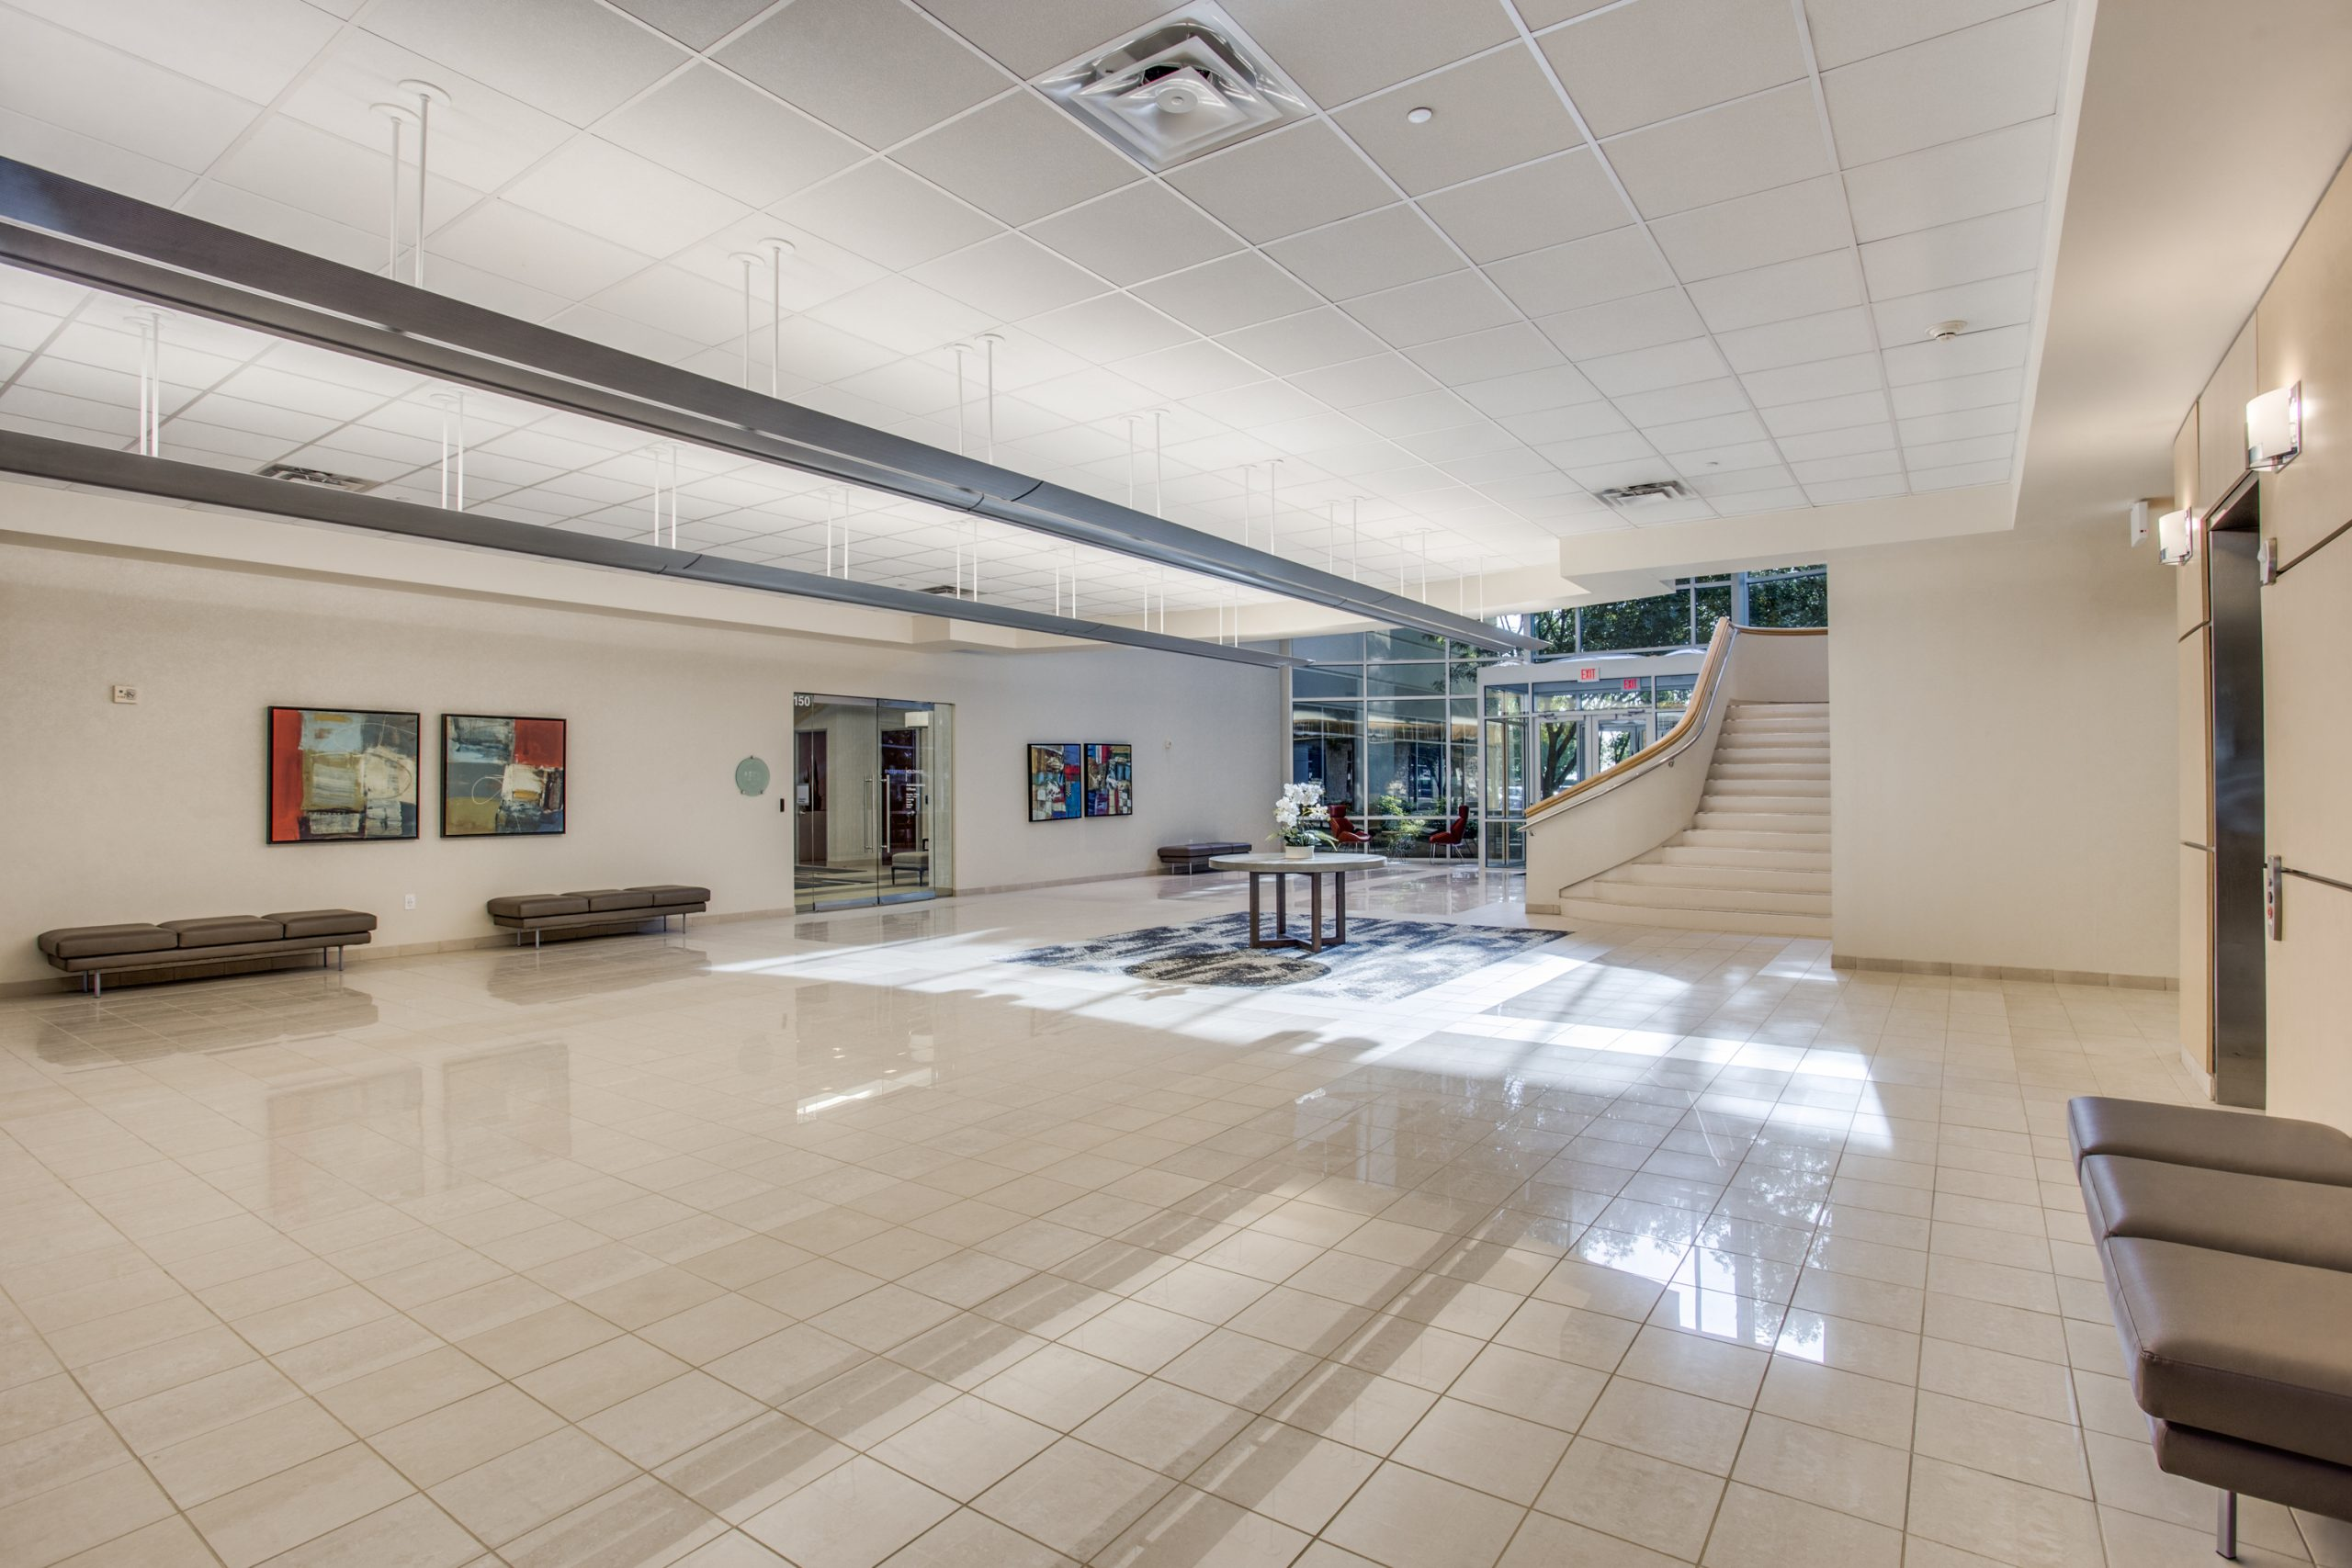 4201-state-hwy-161-irving-tx-High-Res-5